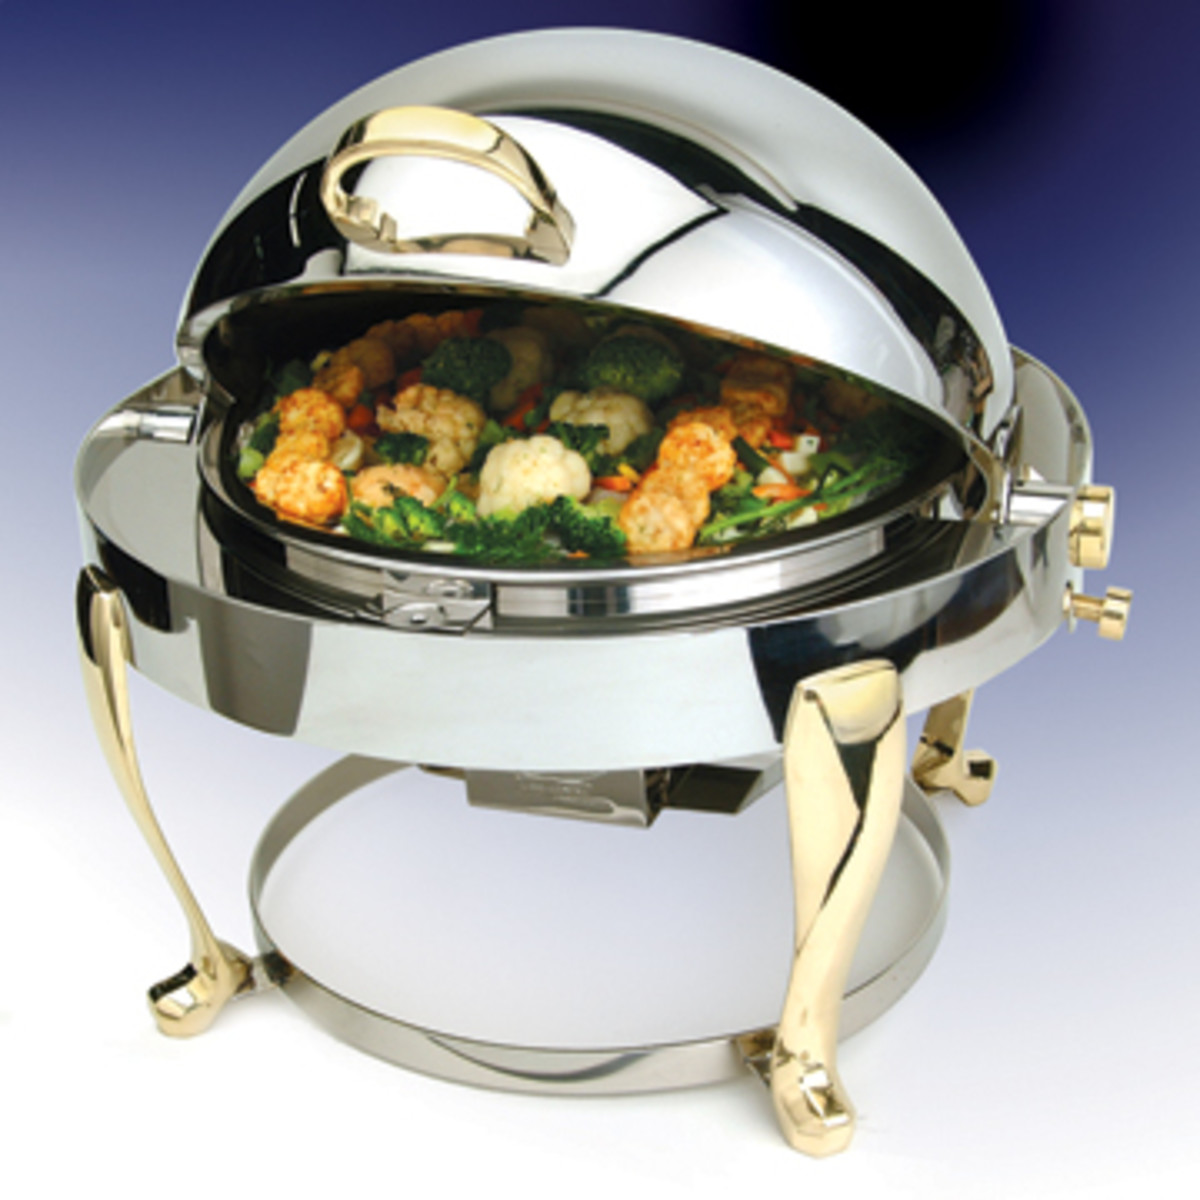 Buy Stainless Steel Chafing Dishes and Impress the Crowd